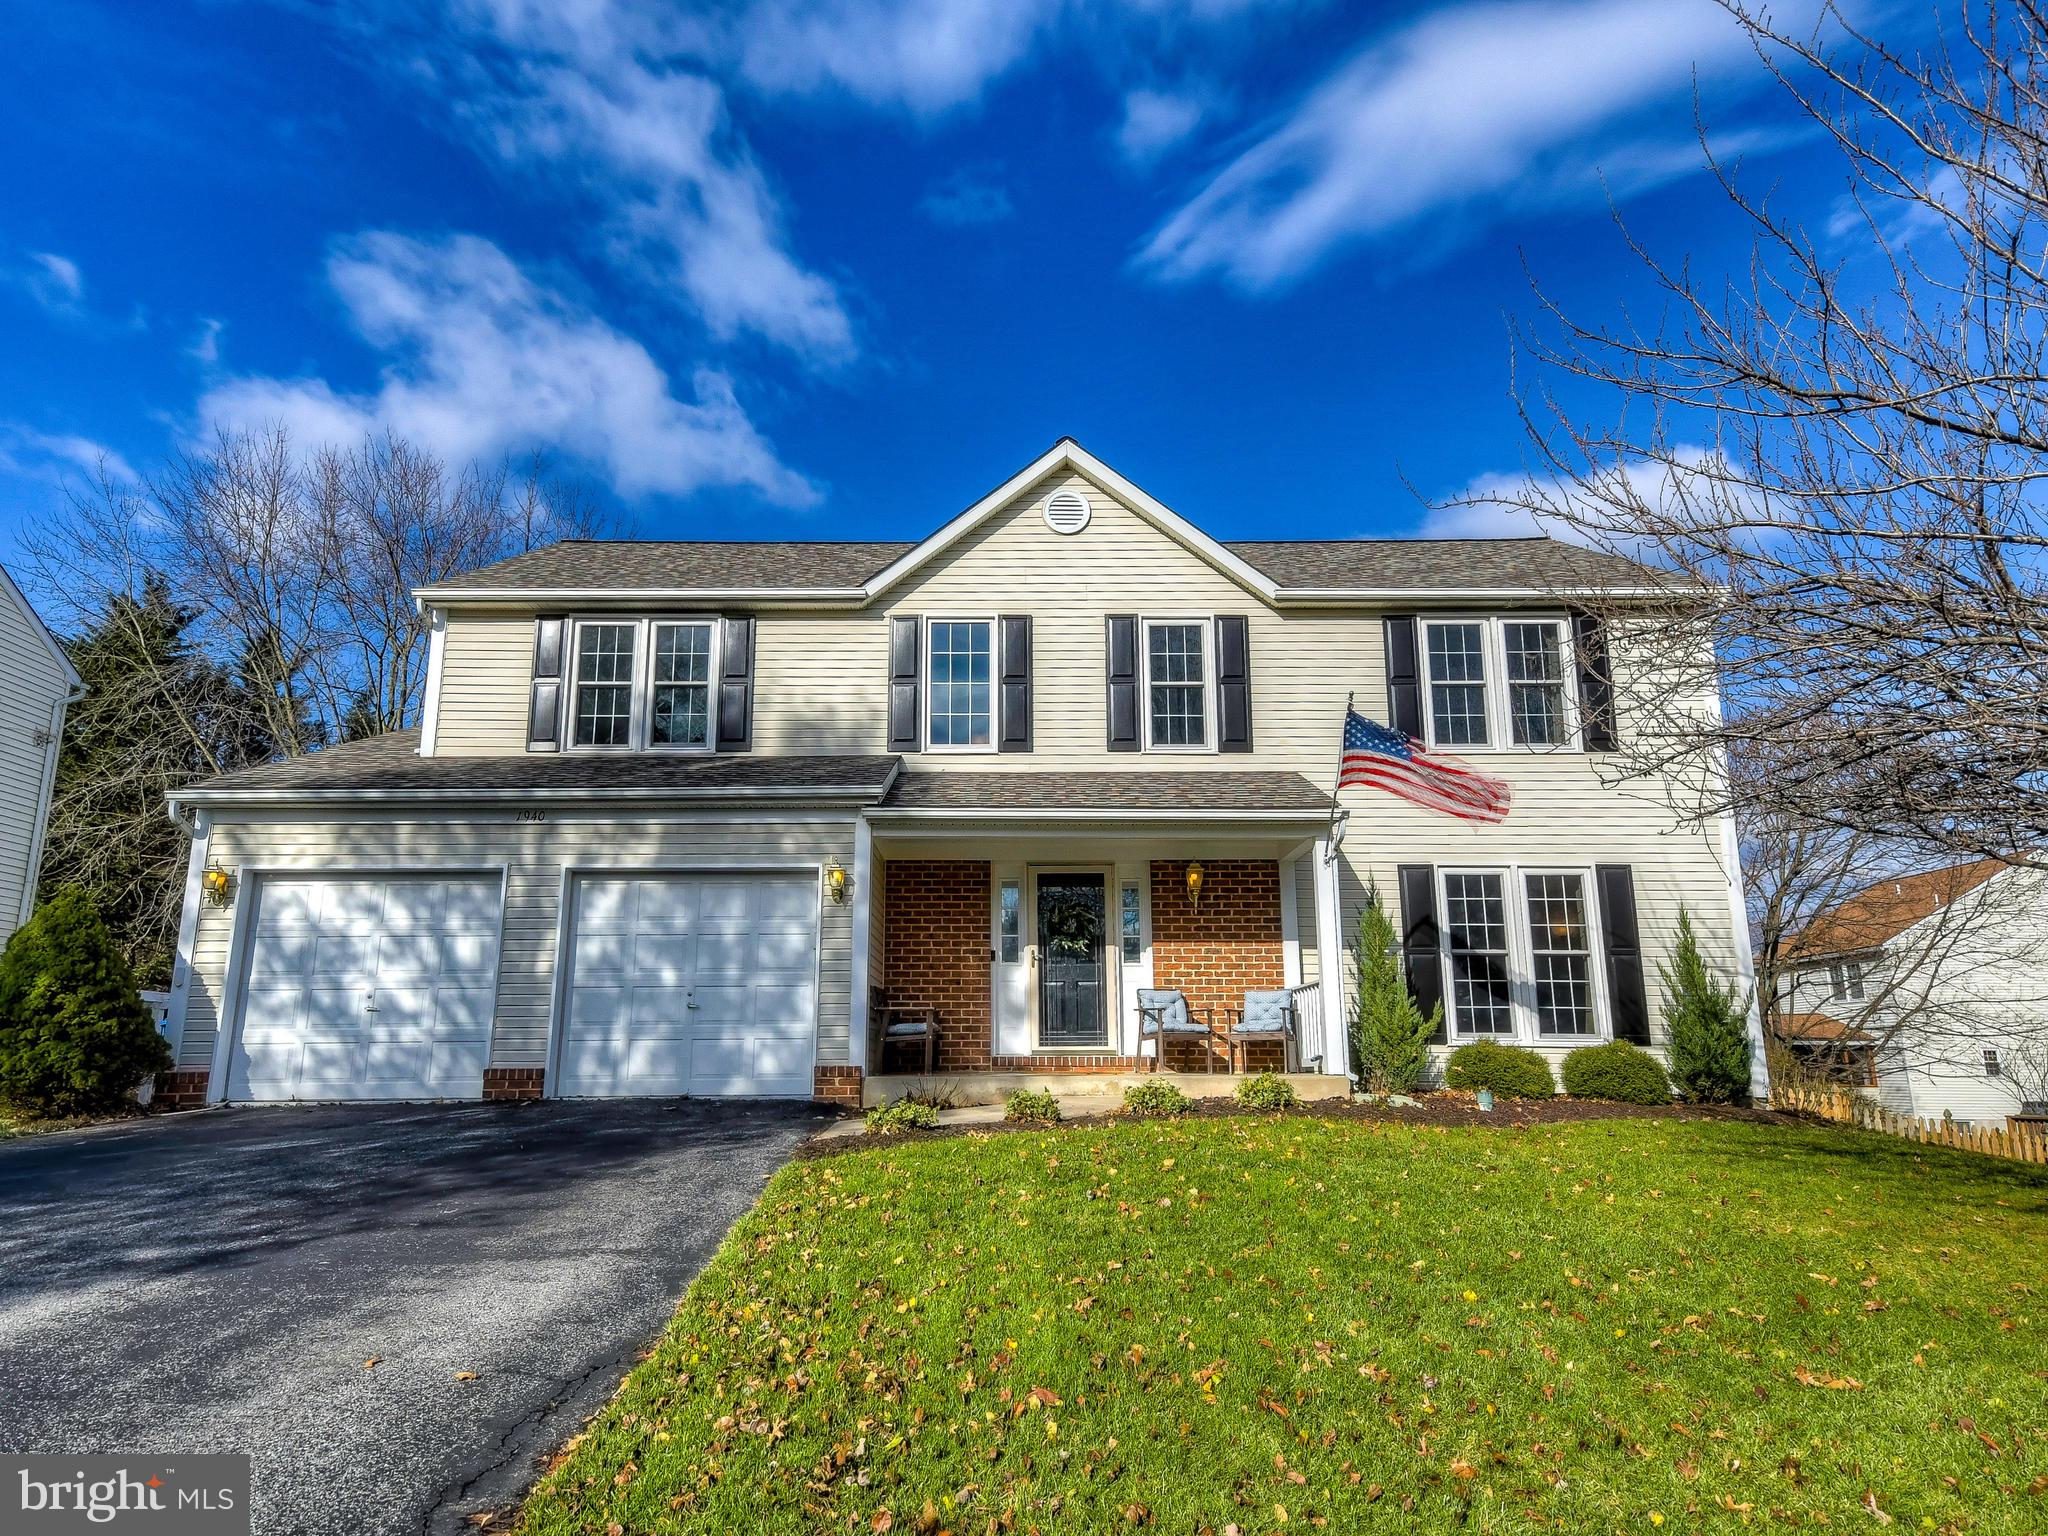 1940 BLACKSMITH DRIVE, MARRIOTTSVILLE, MD 21104